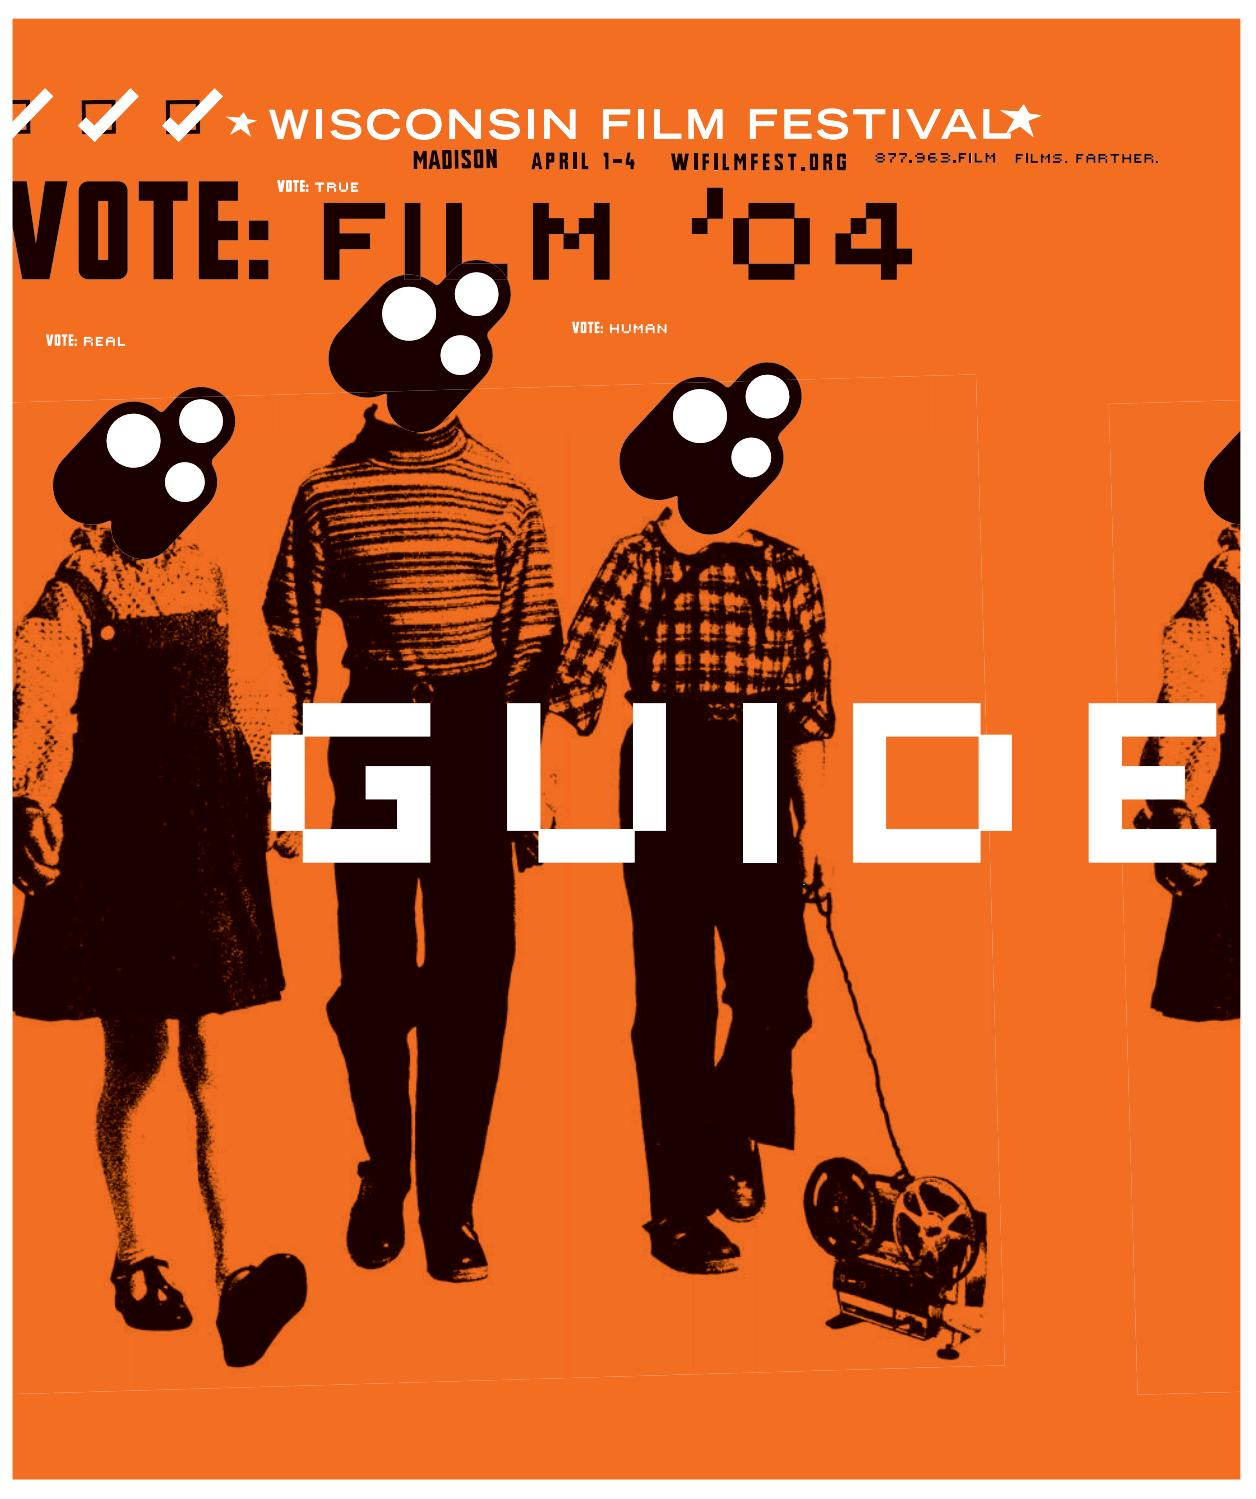 8ea36a80a6 2004 Wisconsin Film Festival Film Guide by UW-Madison Division of the Arts  - issuu